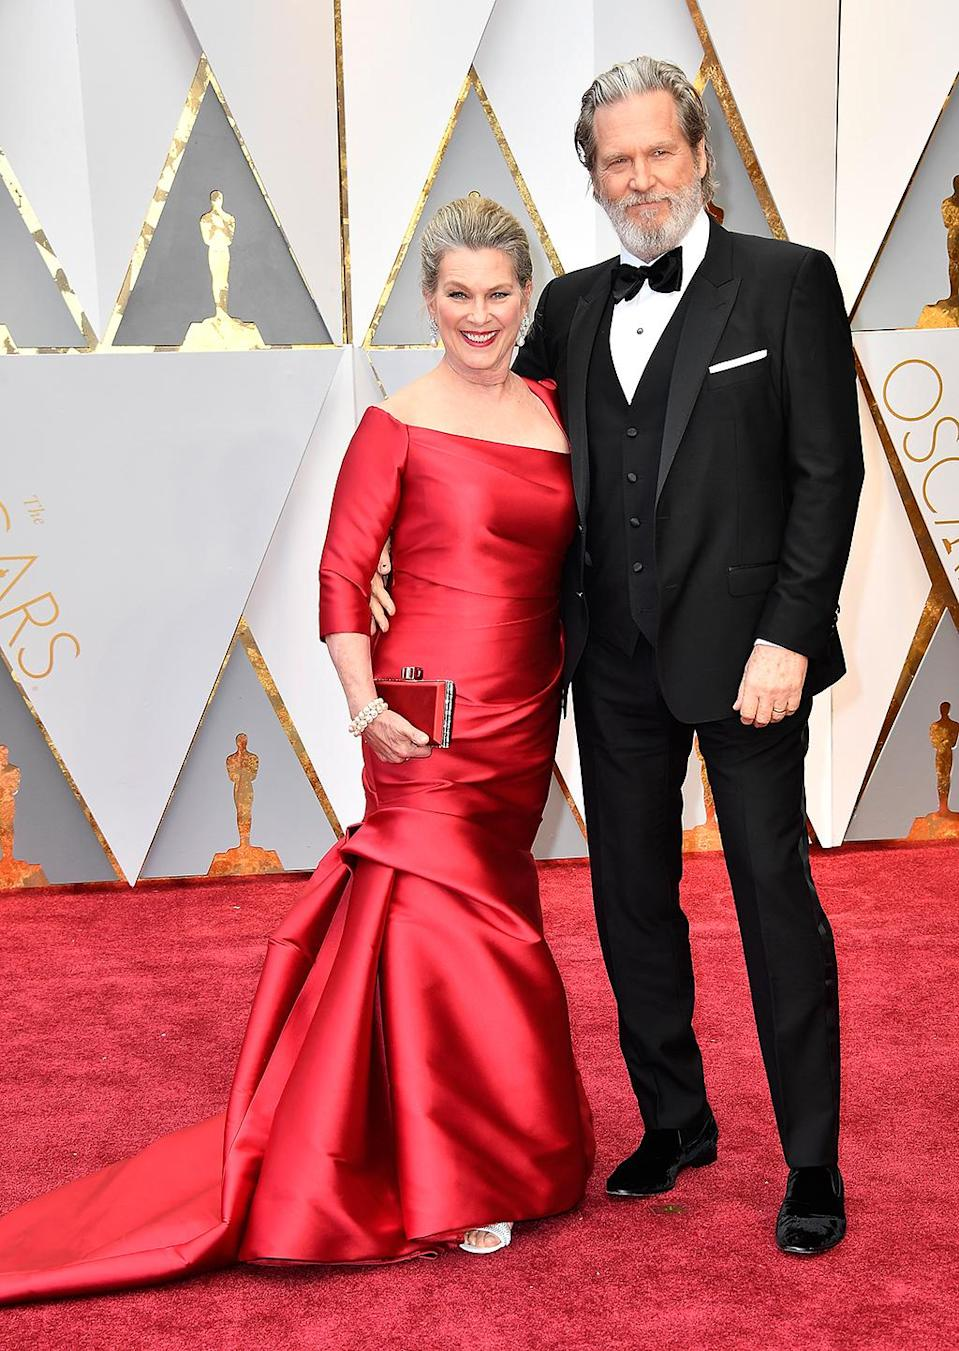 <p>Susan Geston and Jeff Bridges attend the 89th Annual Academy Awards at Hollywood & Highland Center on Feb. 26, 2017. (Photo by Frazer Harrison/Getty Images) </p>